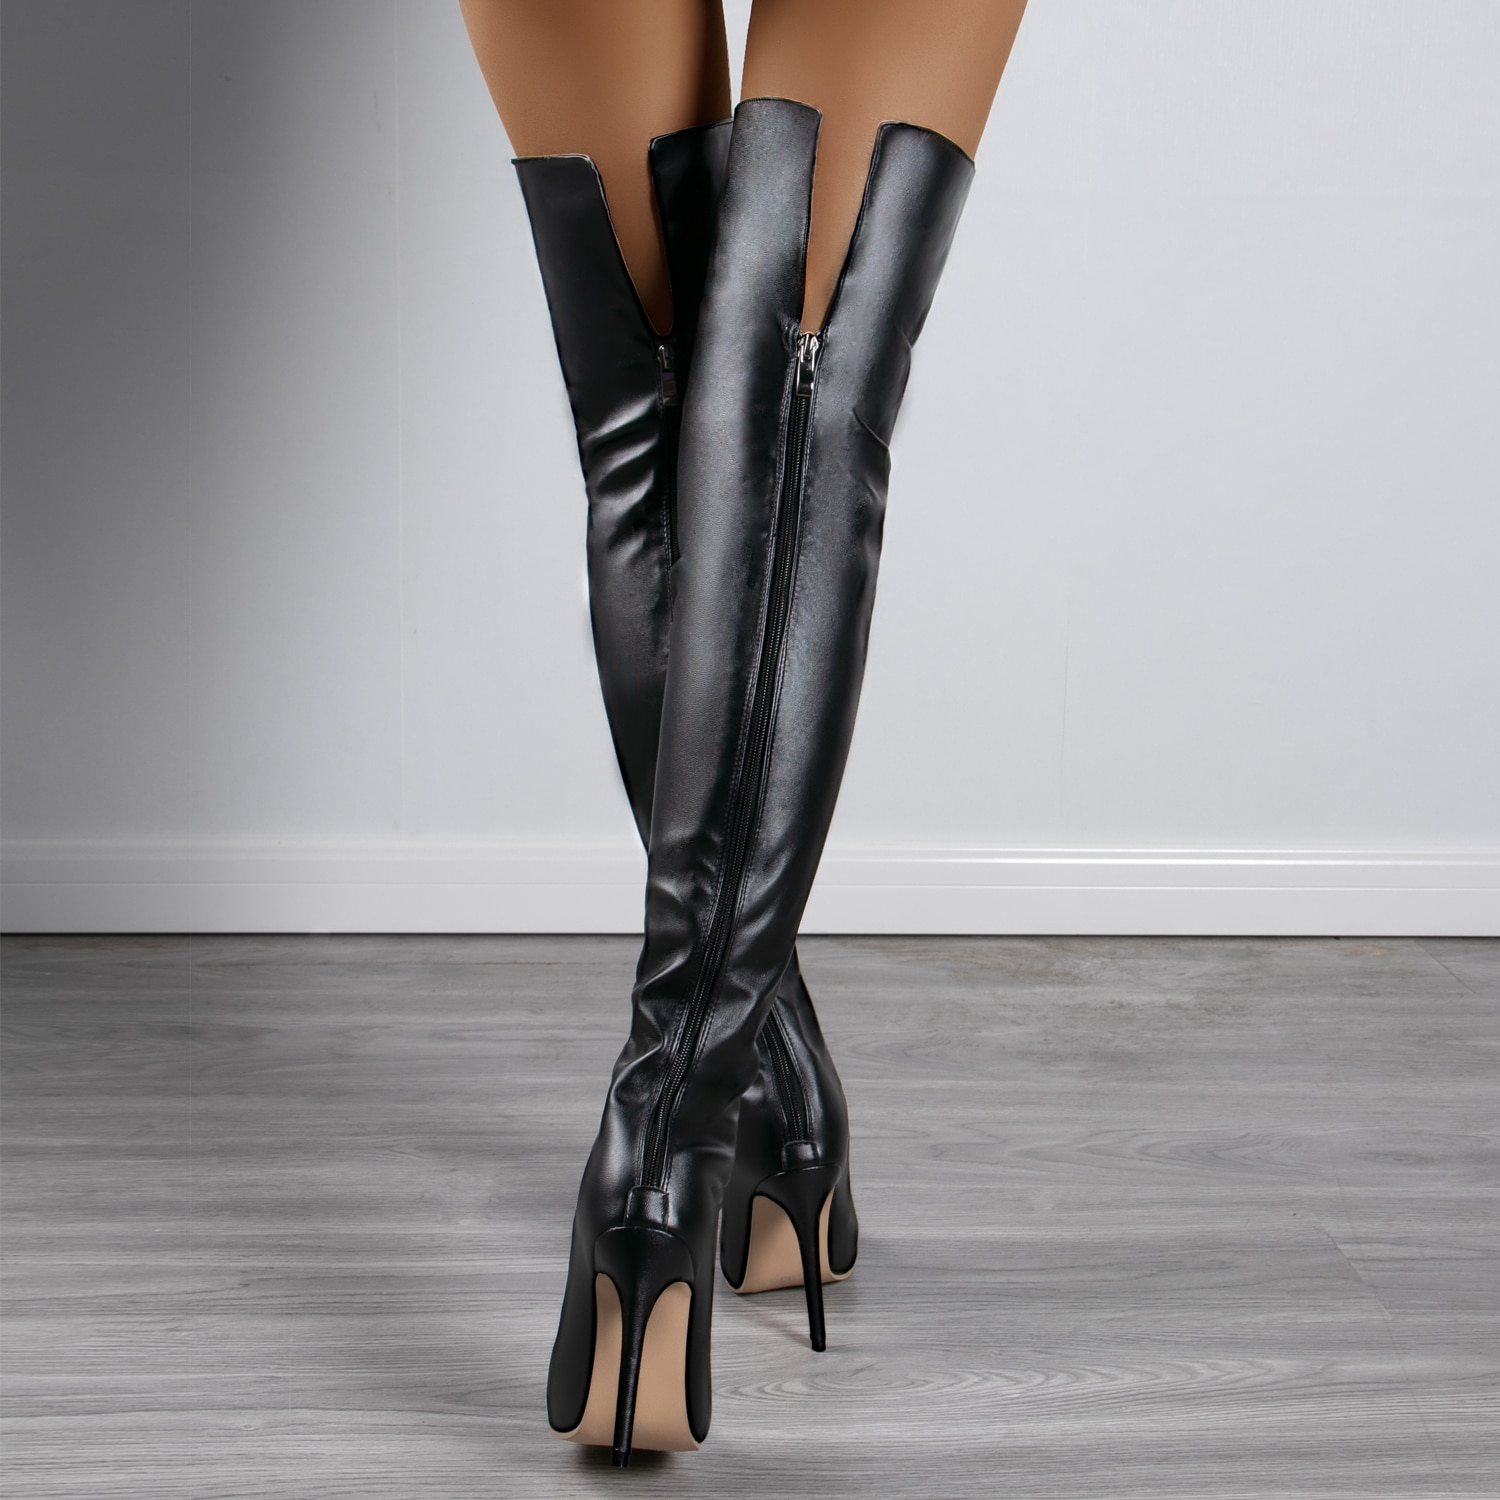 AliExpress - Women Sexy Over The Knee Women's Pointed ToeThigh Long Boots Girls Heels Bootie Autumn Winter Stretch Botas